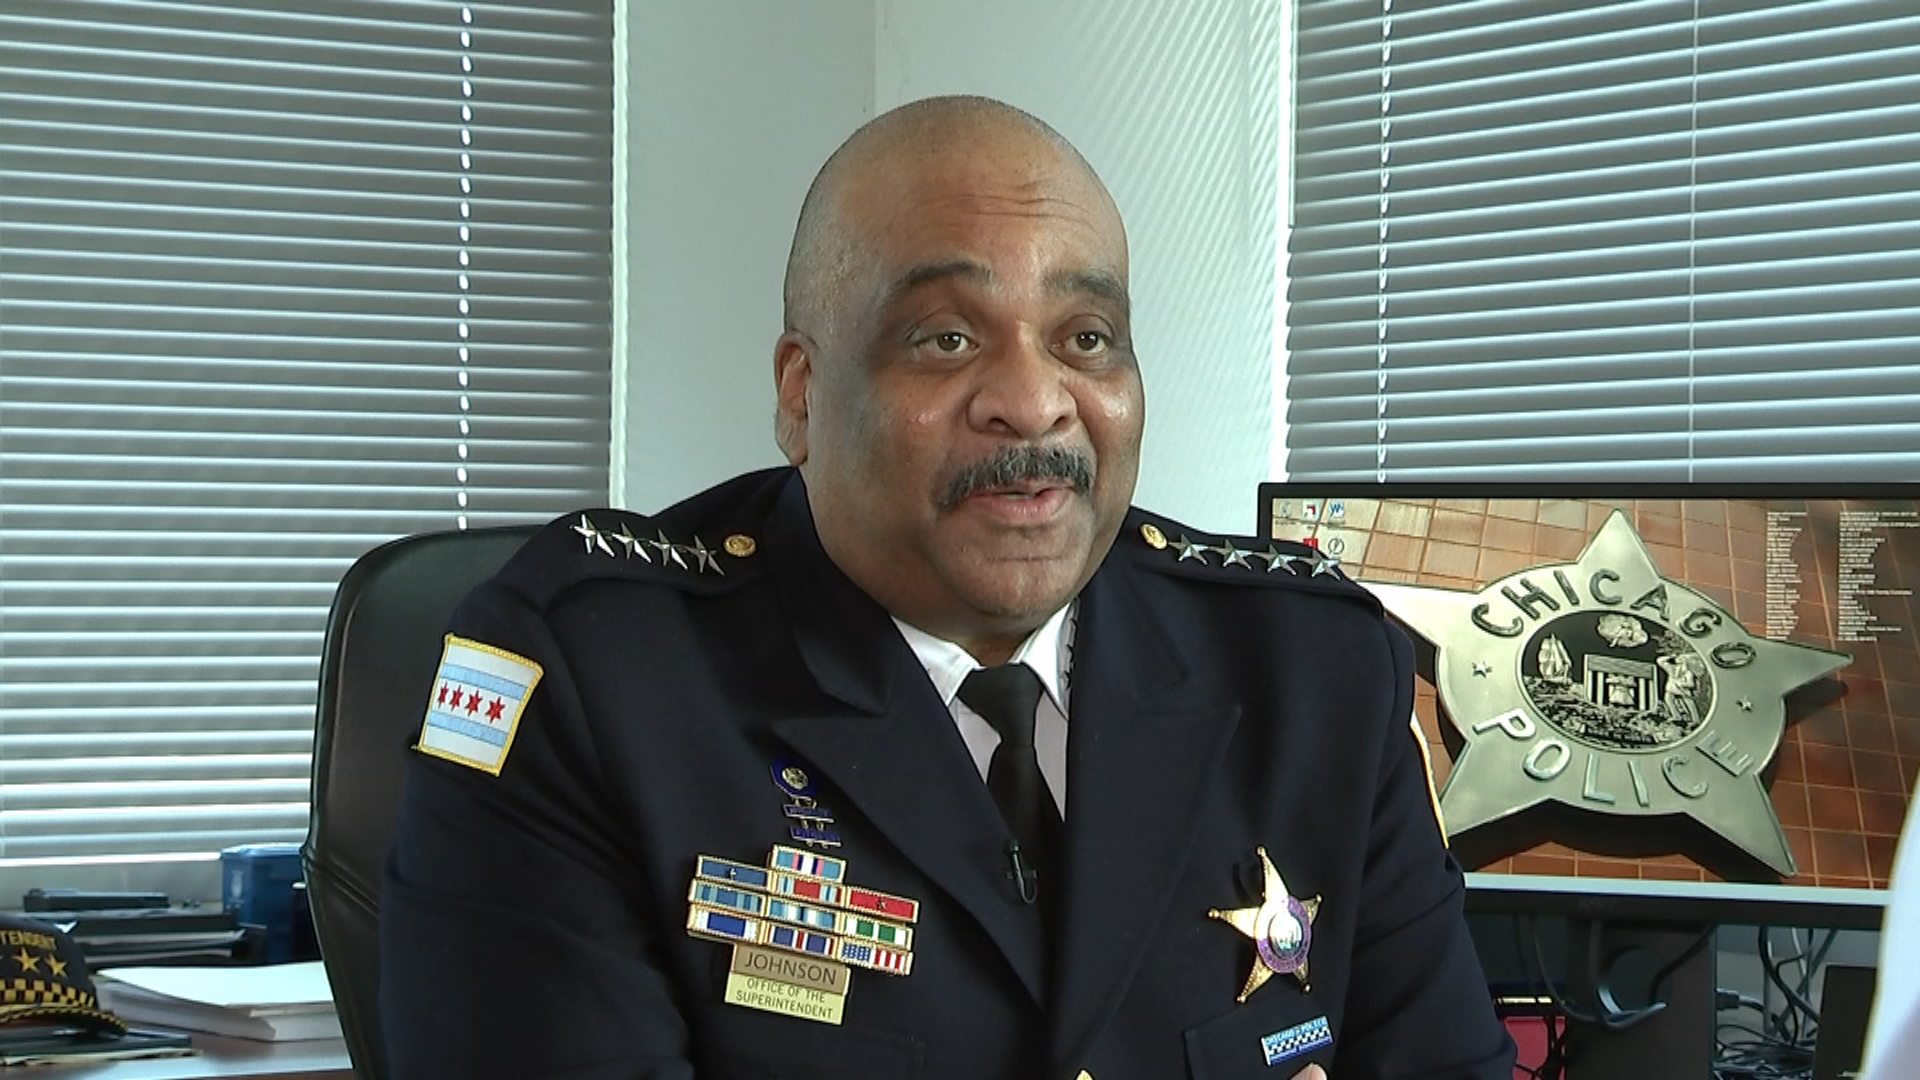 Supt. Eddie Johnson Says He's Not Done Working